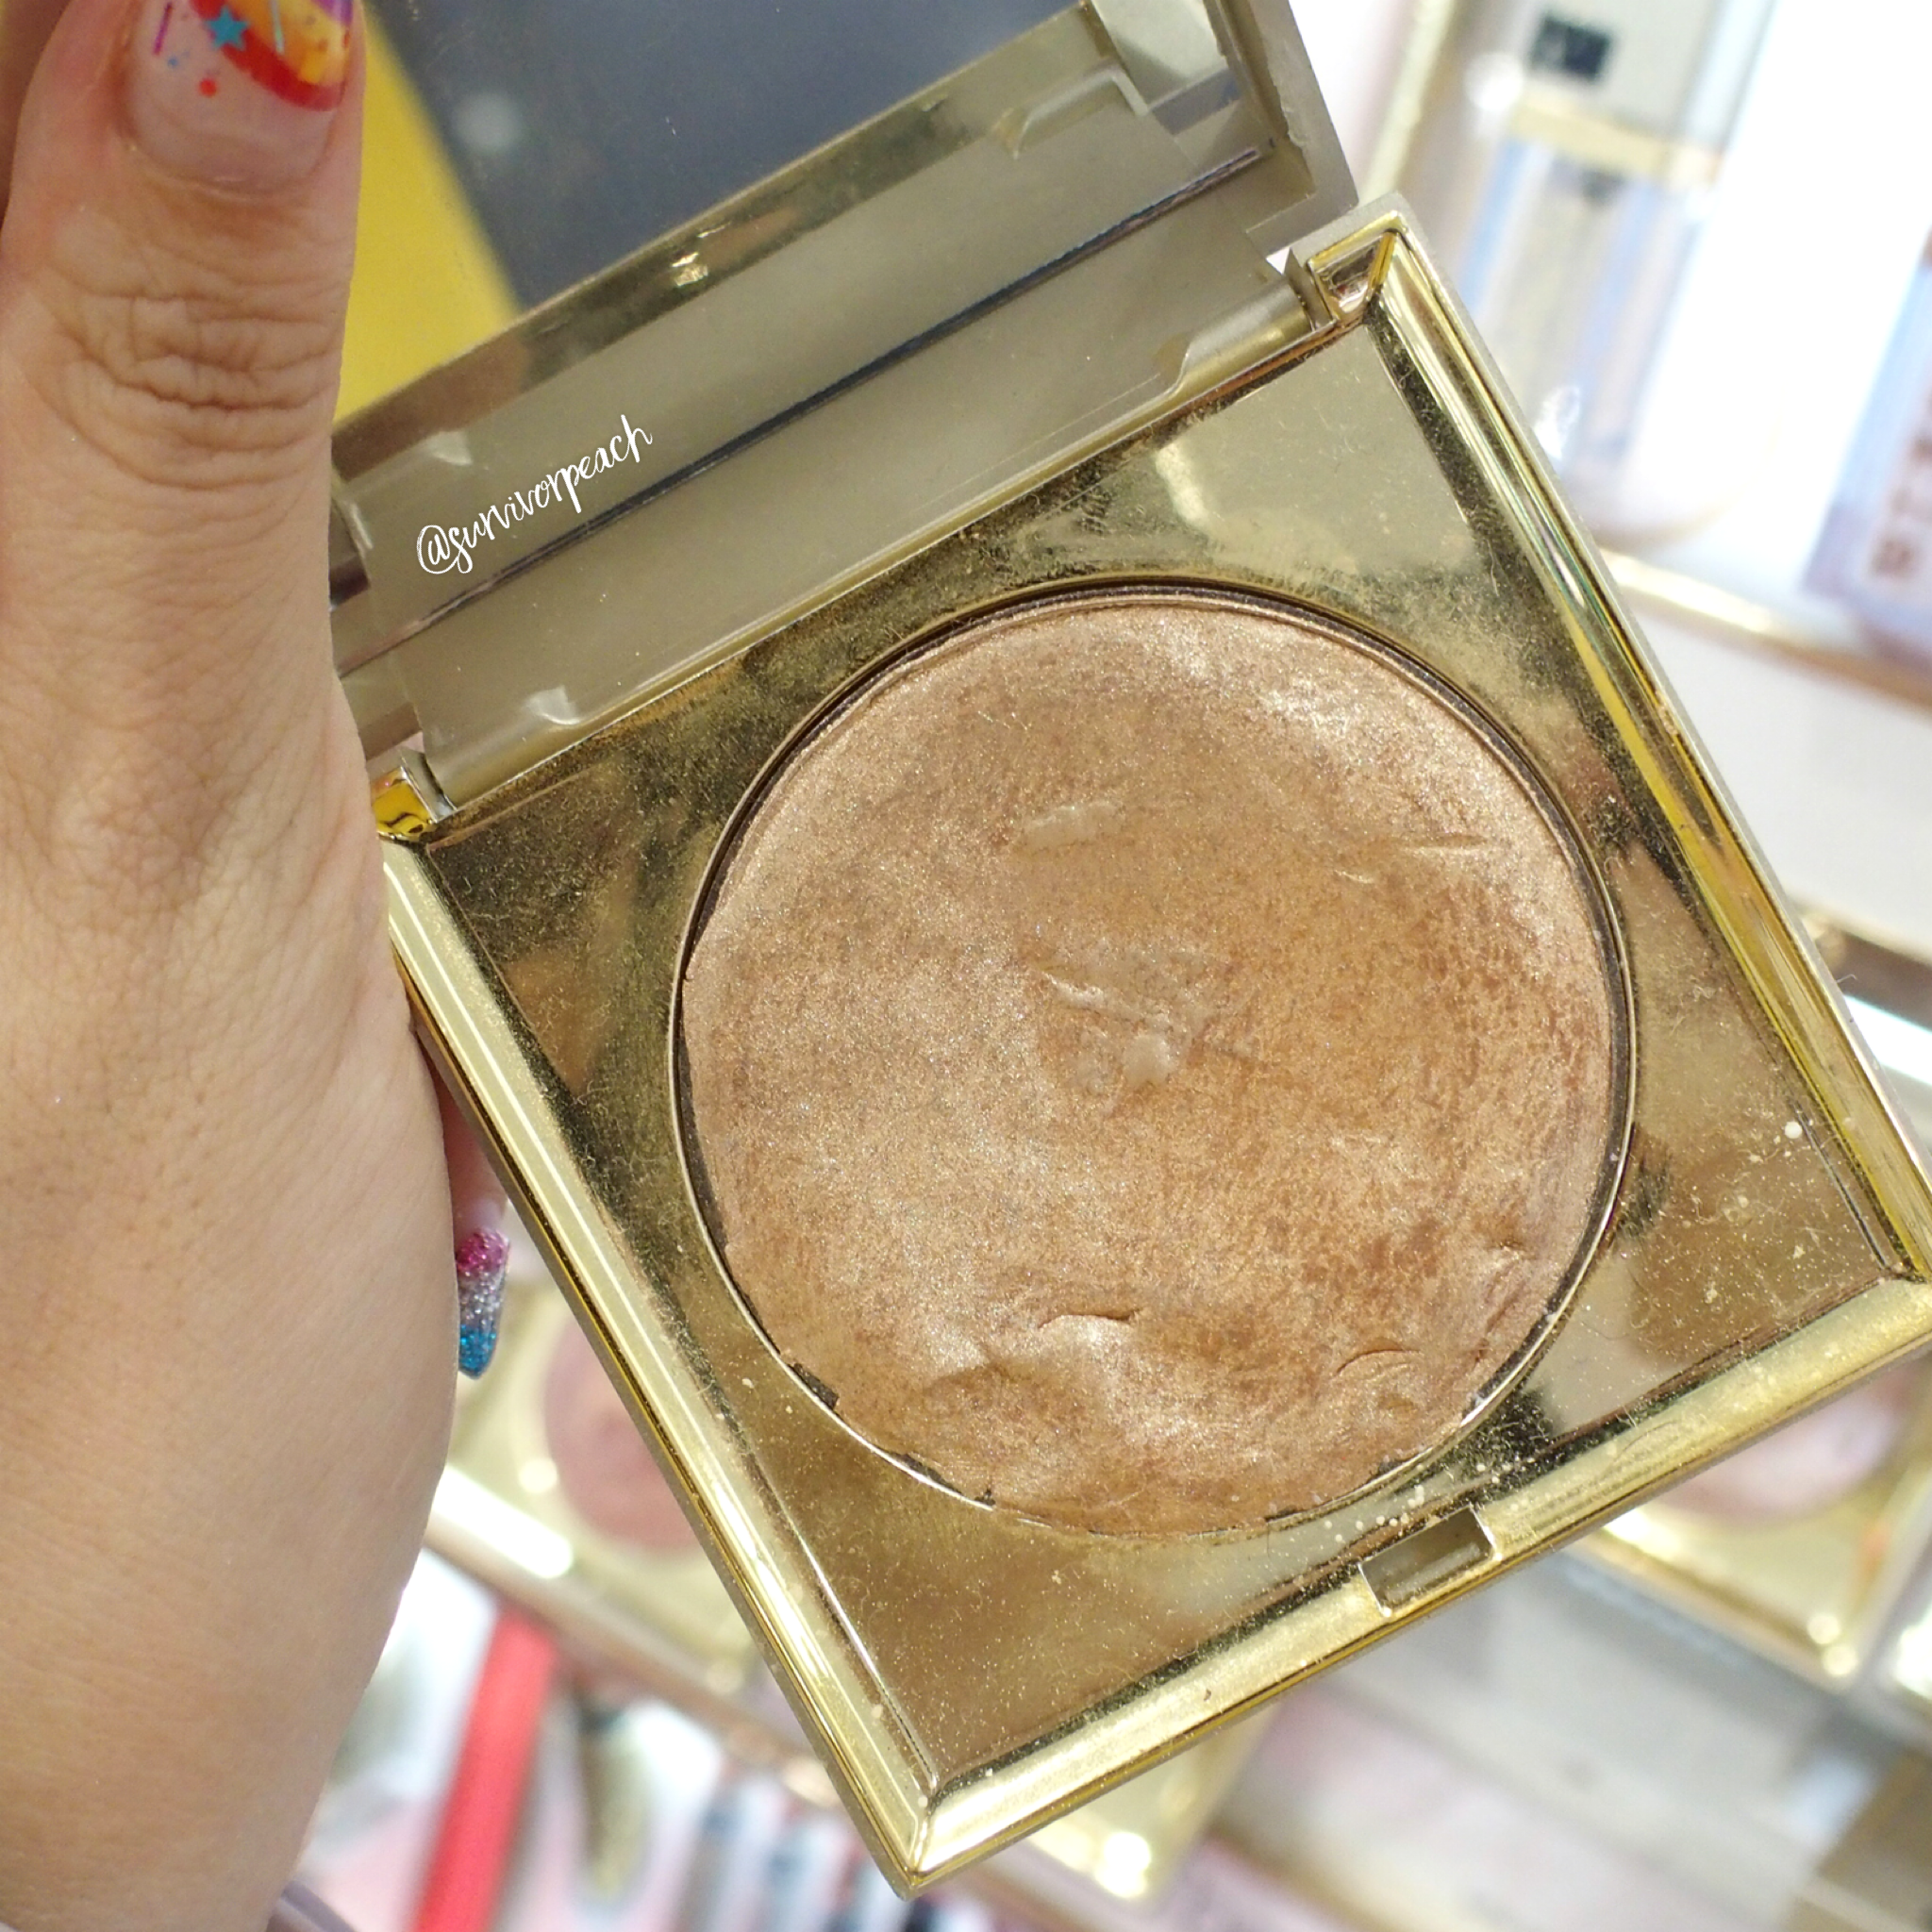 Stila Heavenly Hue Highlighter - Brilliance